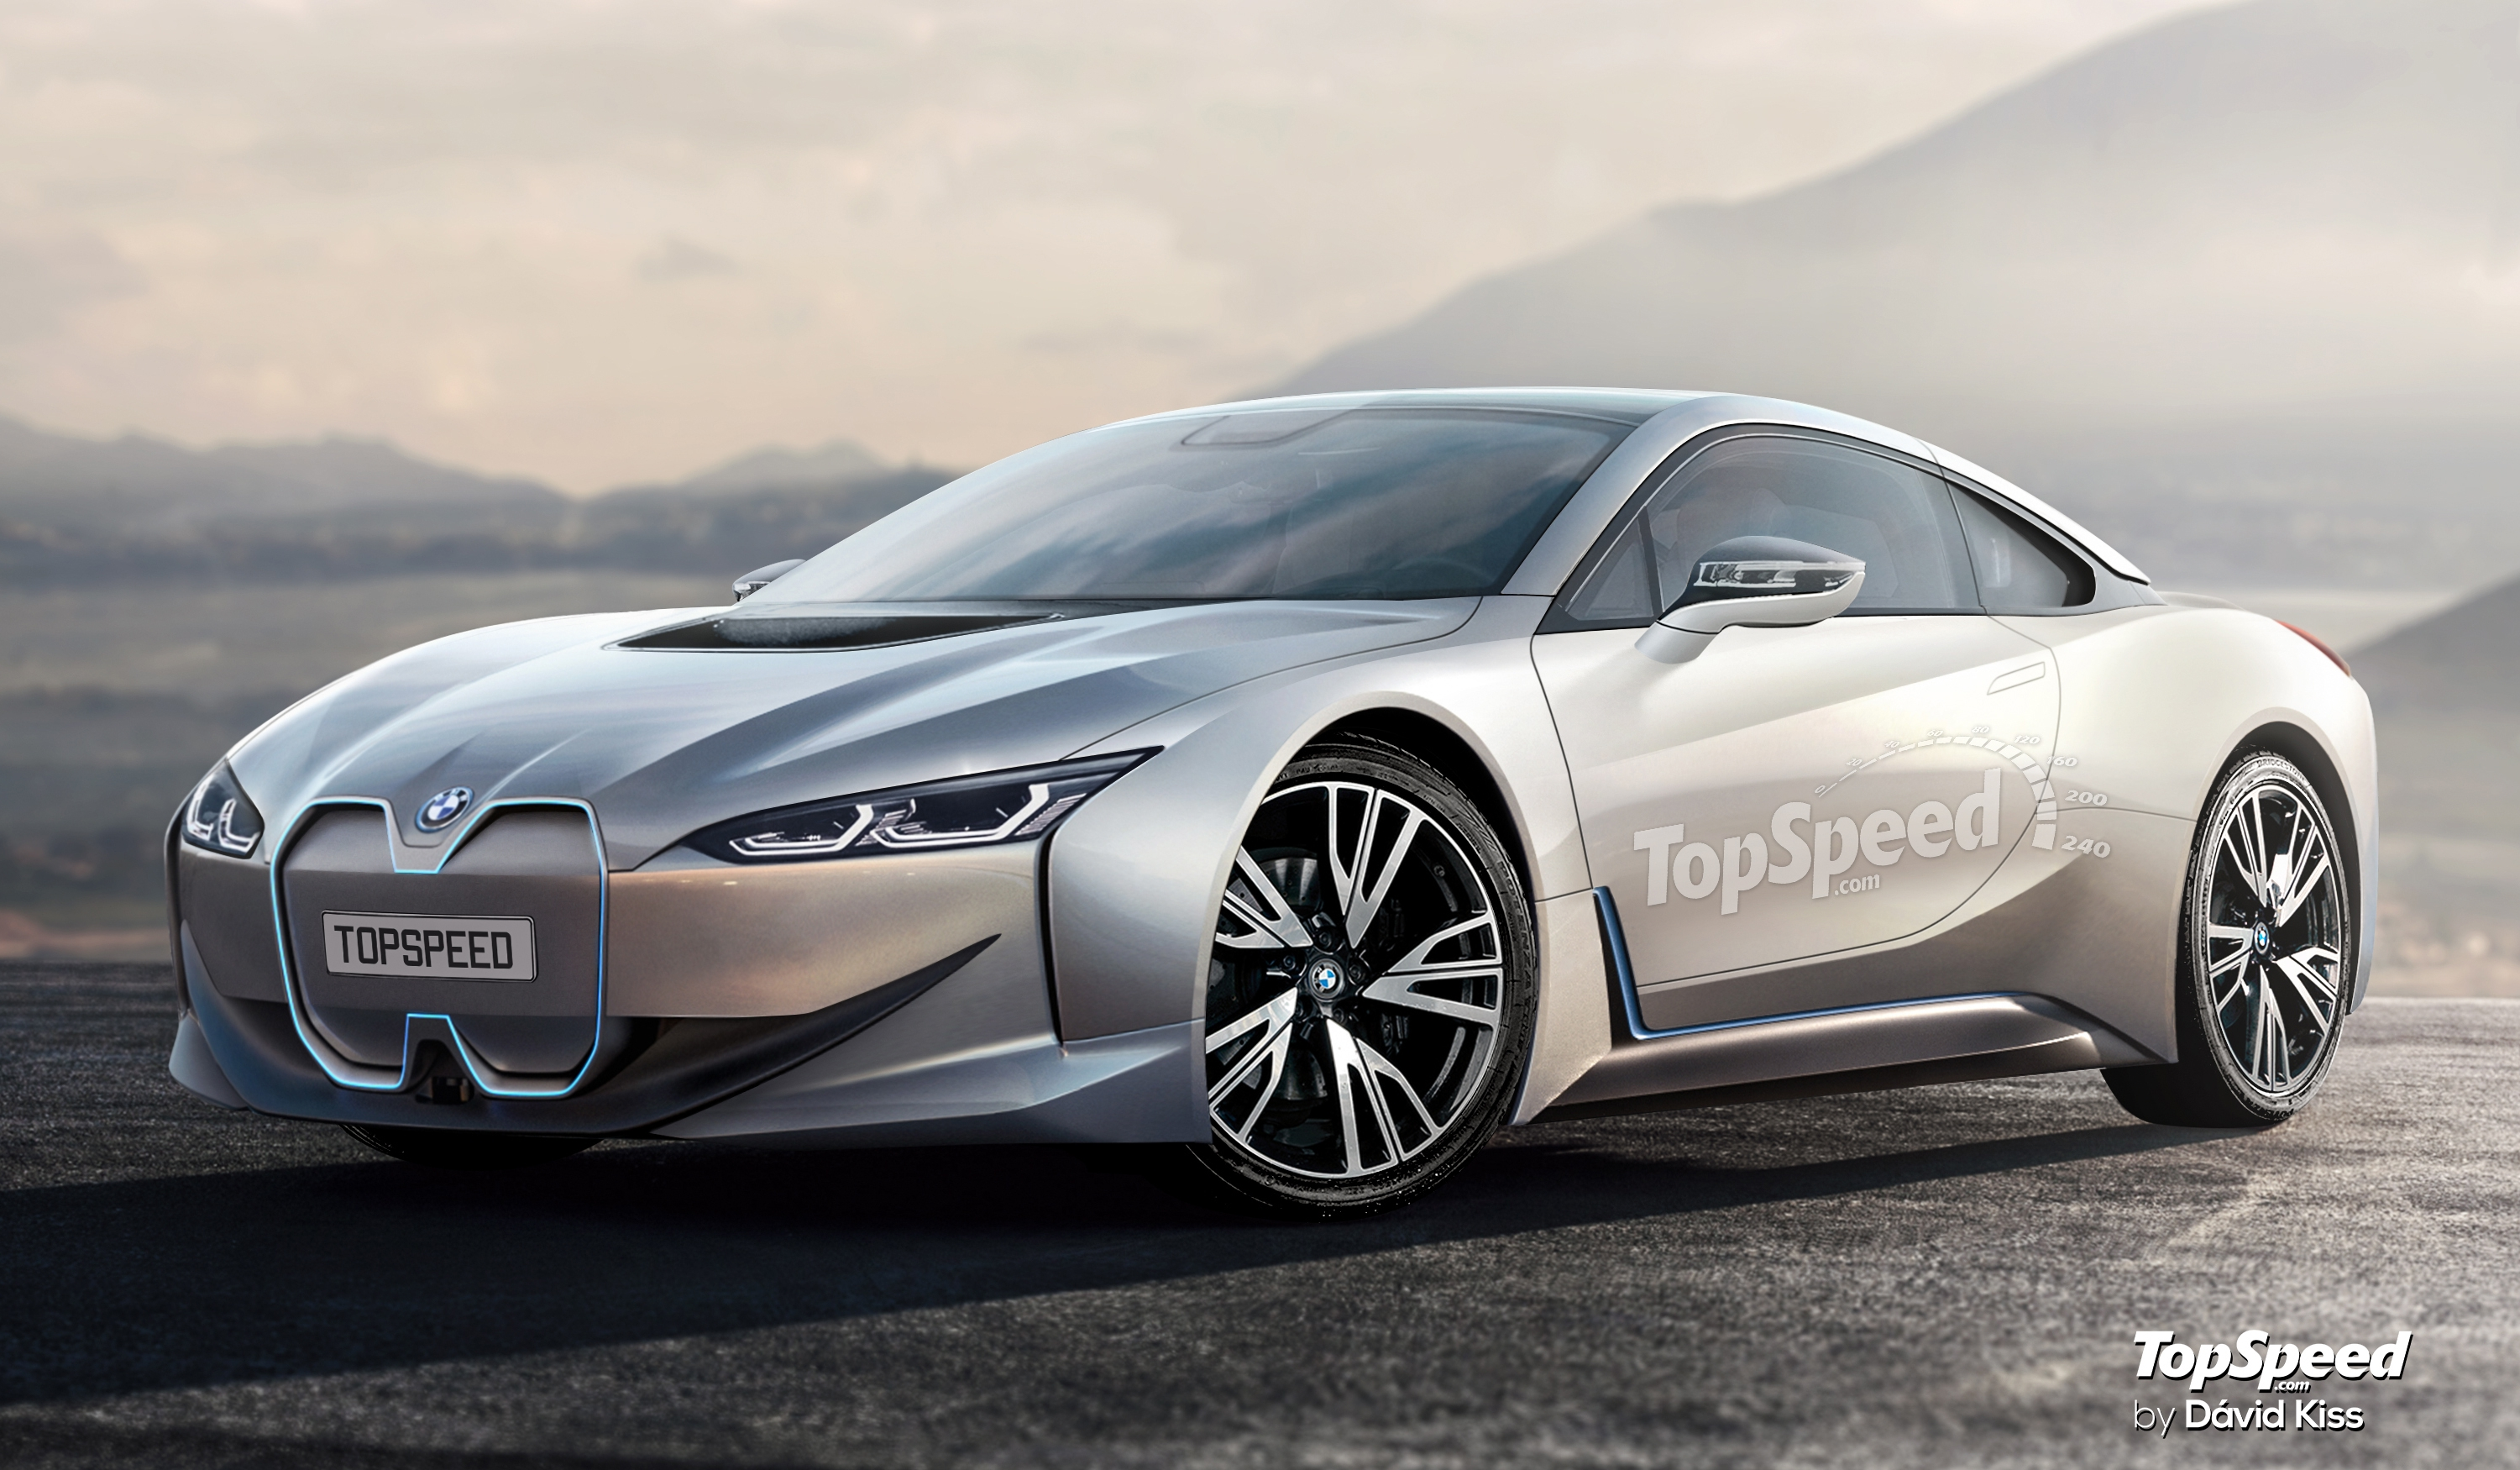 2020 Bmw I8 Top Speed